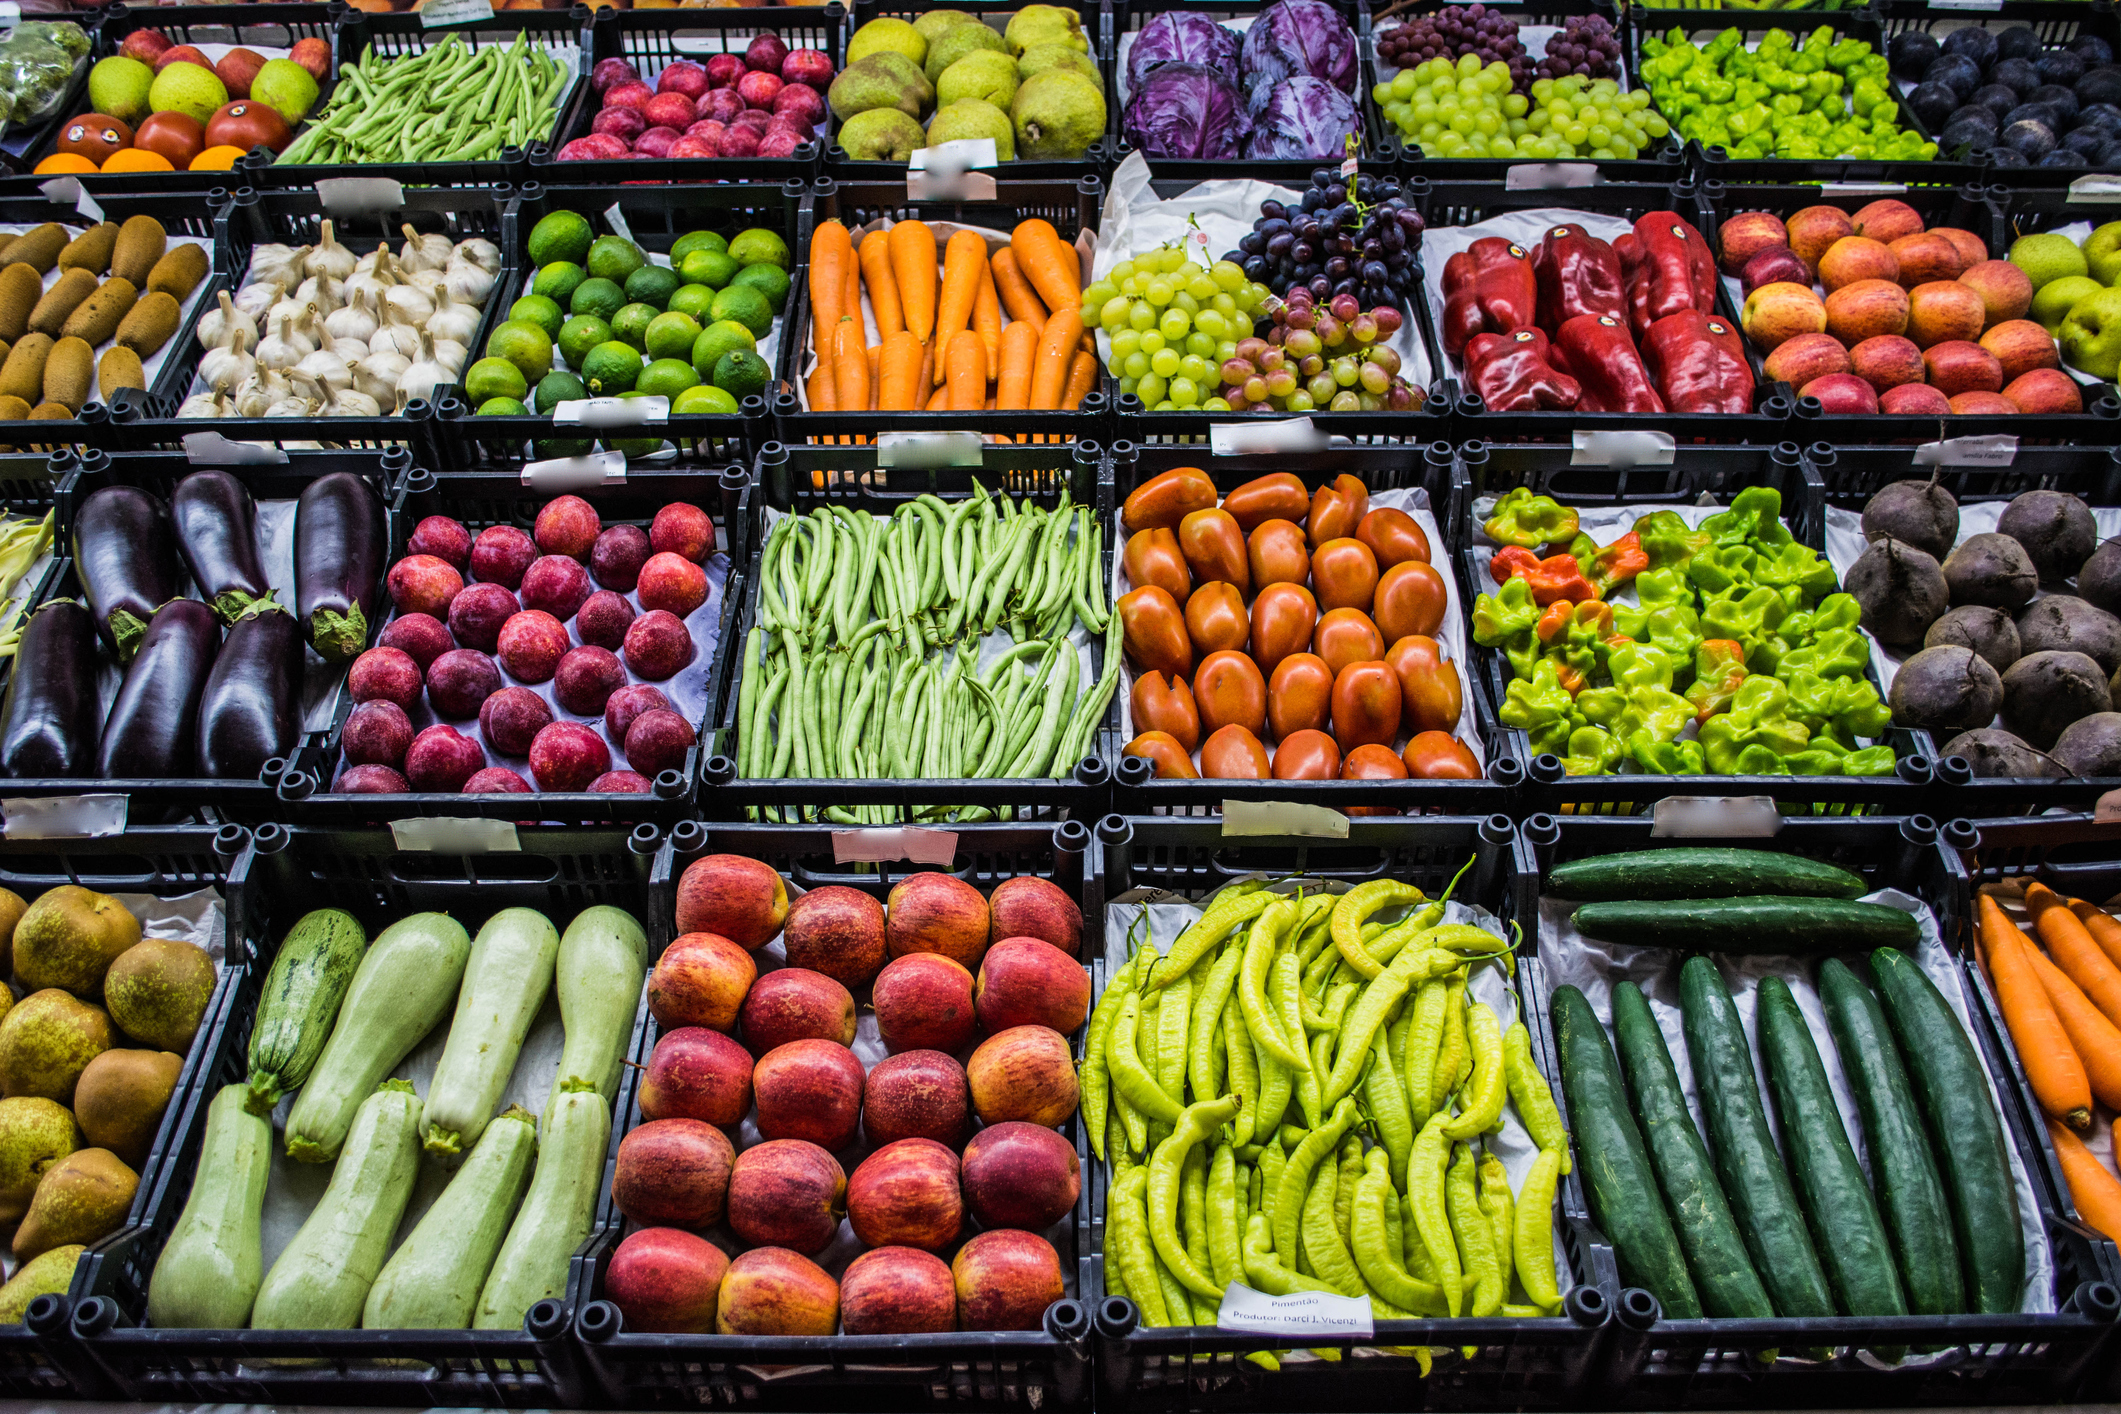 Produce at store